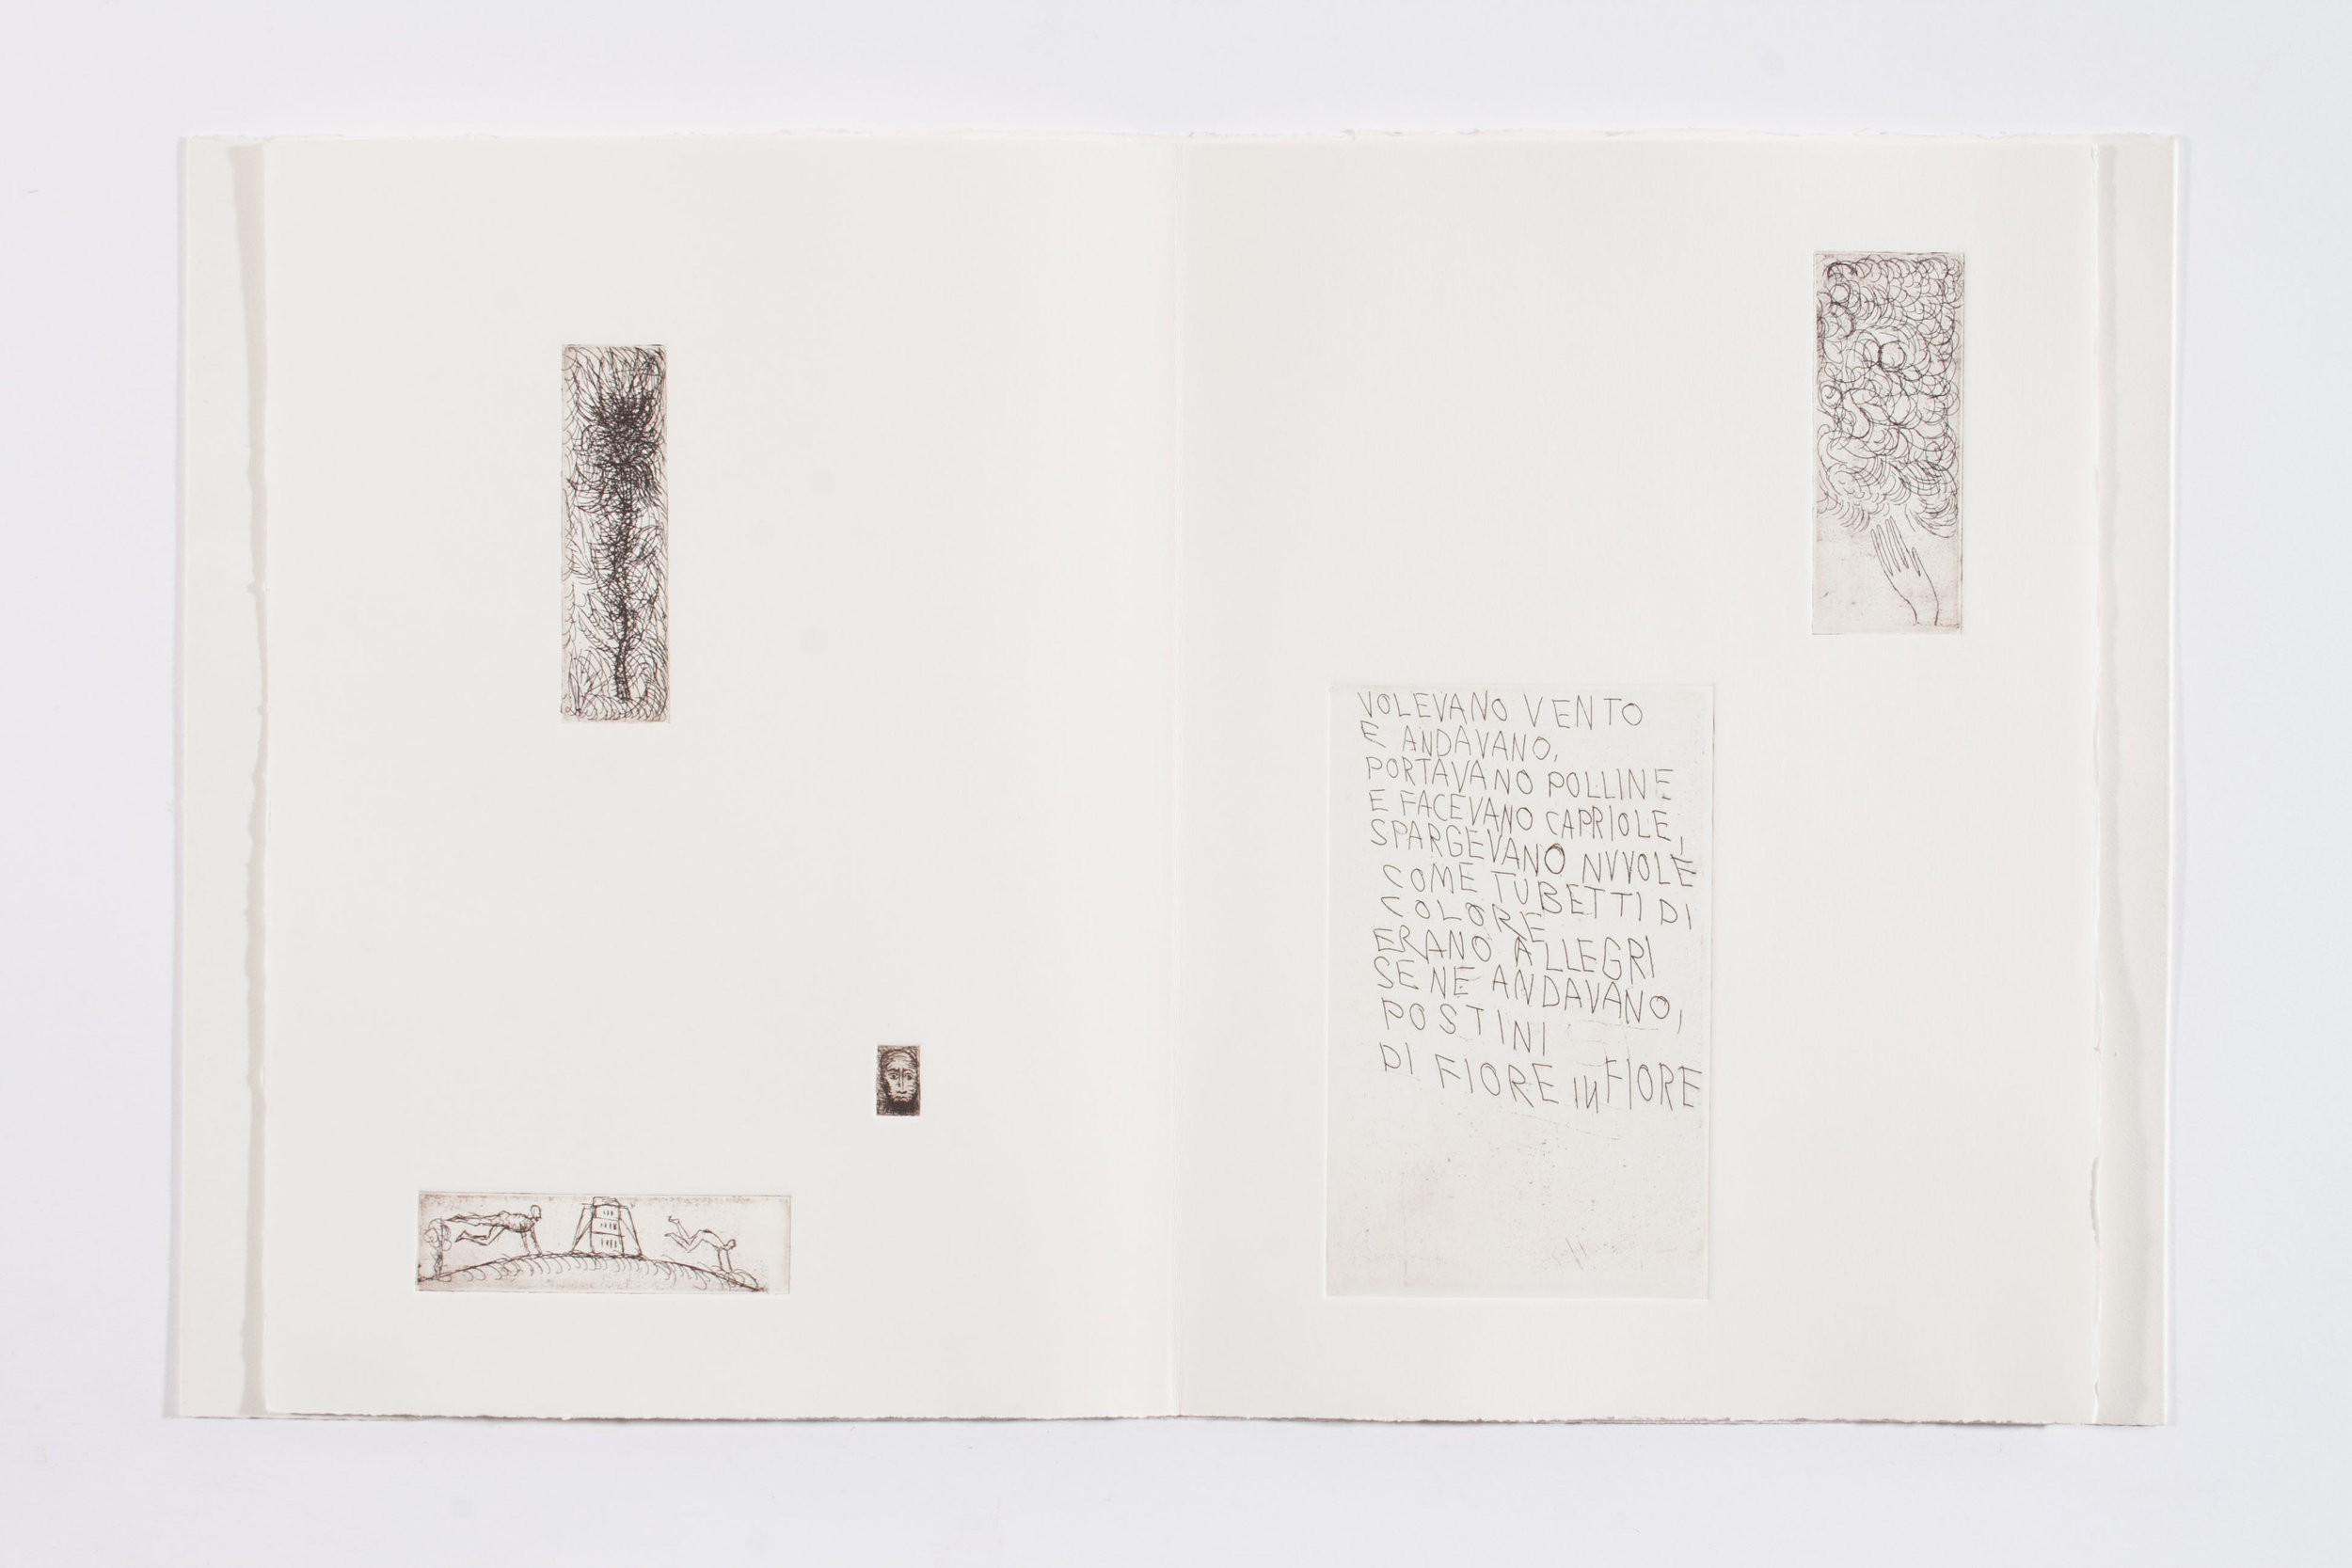 VOLEVANO VENTO Seven etchings of MIMMO PALADINO Ten unpublished poems of NICO ORENGO , 2006 Artist Book 14 x 10 1/4 inches (35.6 x 26 cm) Case: 15 1/4 x 11 1/4 x 1 3/4 inches (38.7 x 28.6 x 4.4 cm) Edition : VII/XX Edizioni Canopo Edition of 55. Numbered from 1/35 to 35/35 in Arabic numbers and I/XX to XX/XX in Roman numbers. Plus one artist proof.